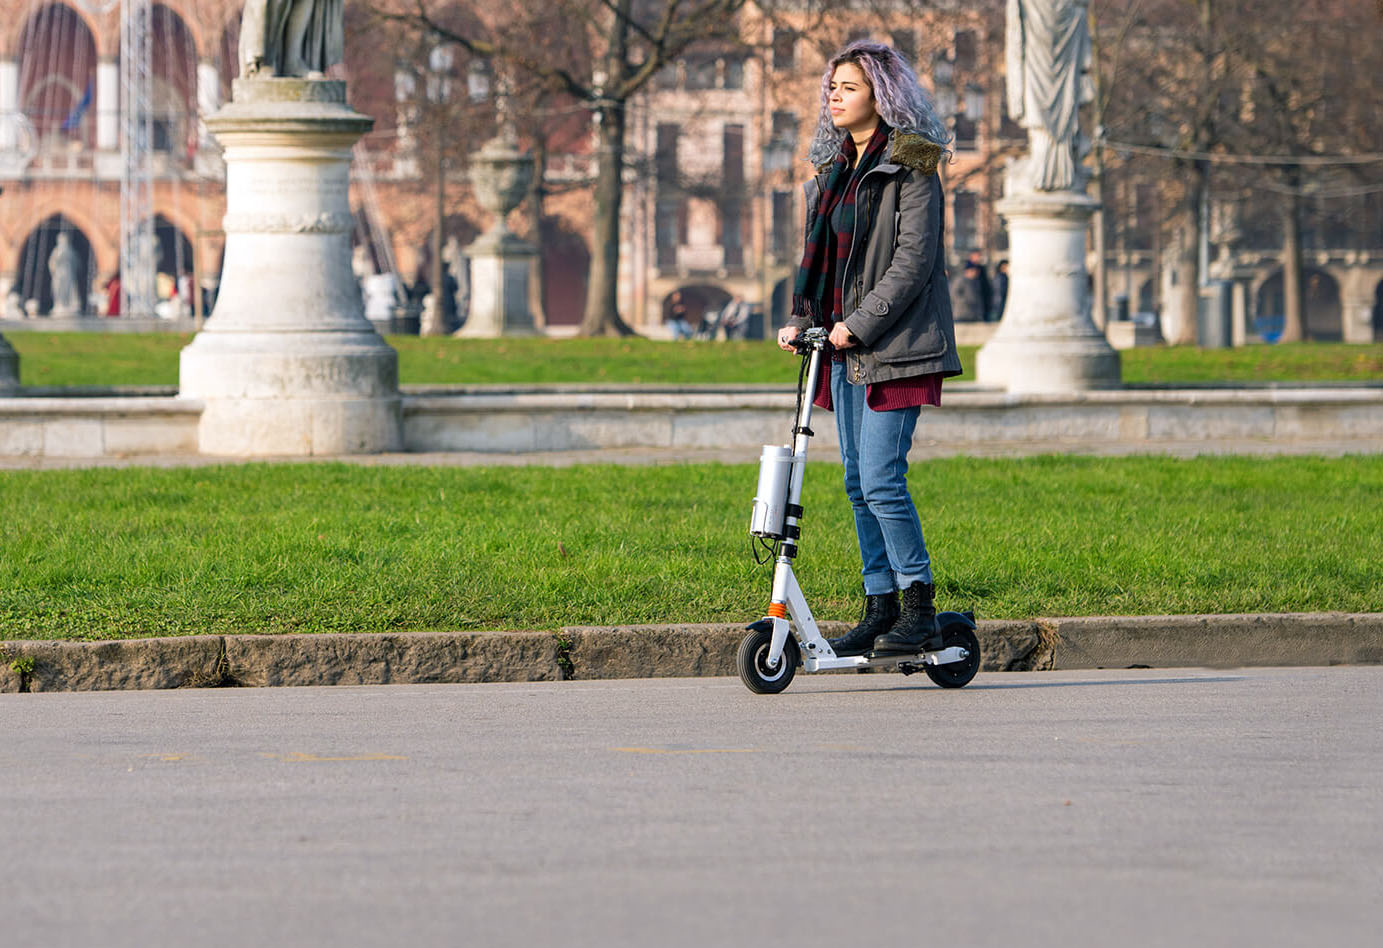 Airwheel two wheel self-balancing electric scooter Z3